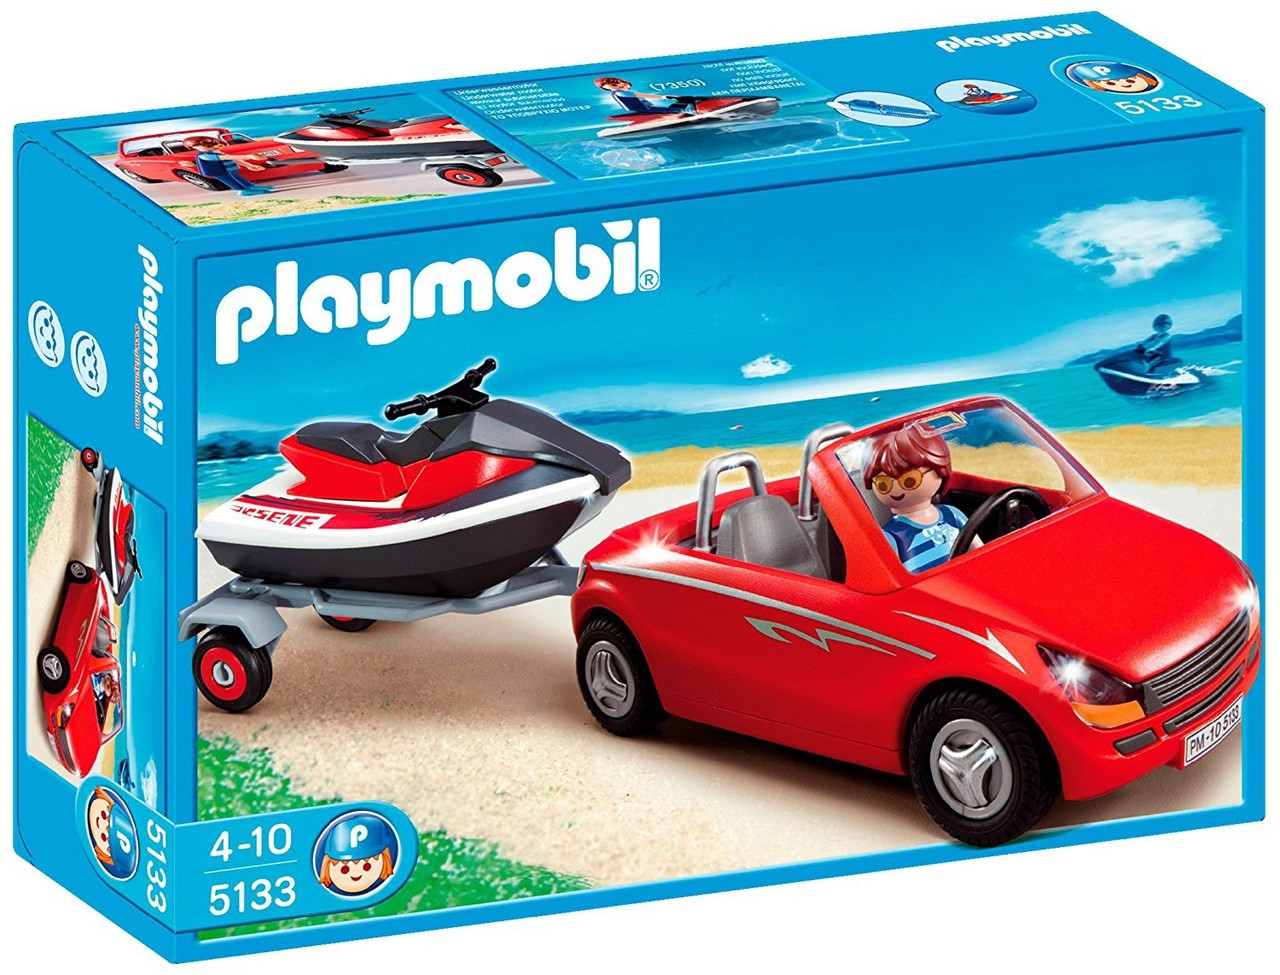 Playmobil Harbor Red Convertible with Personal Watercraft Set #5133